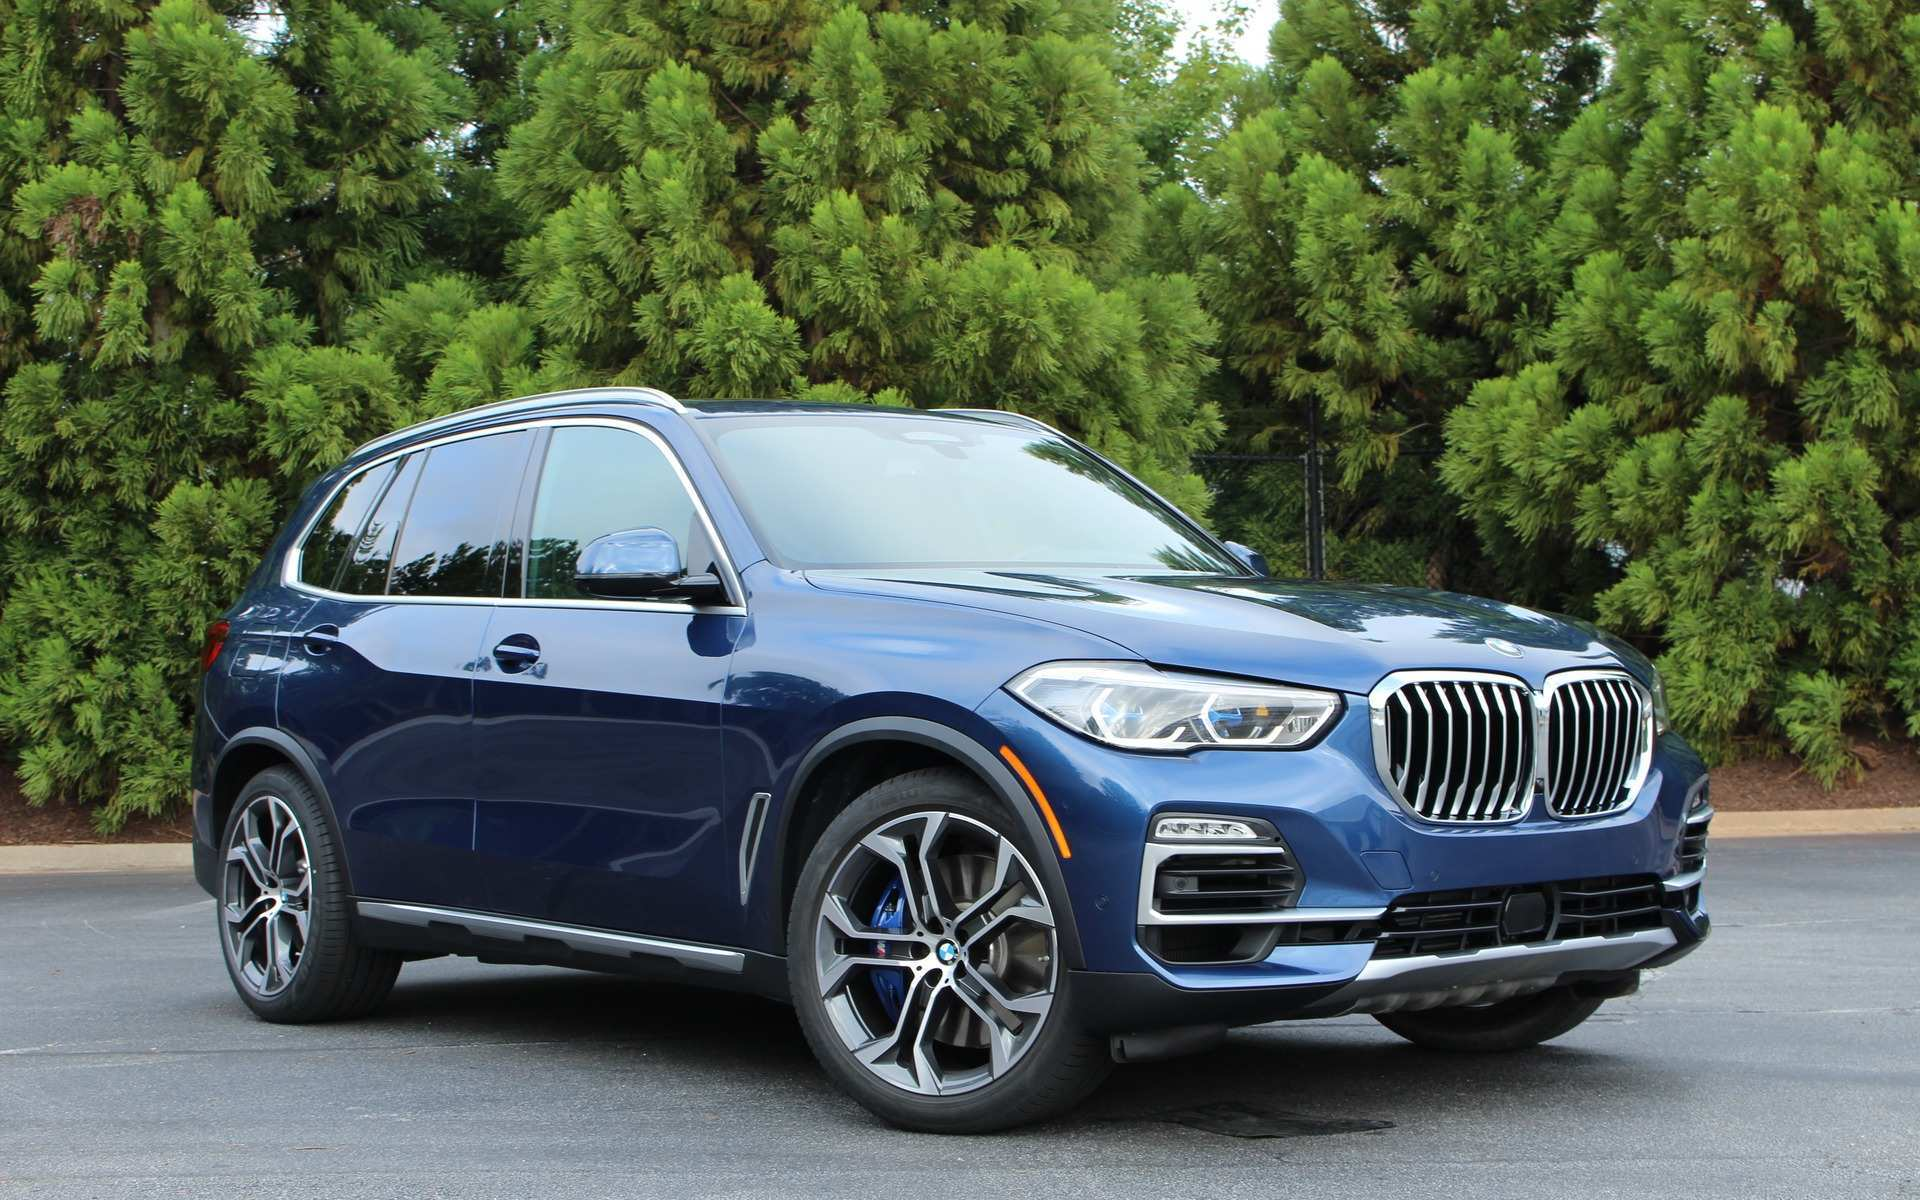 56 Best Review The 2019 Bmw X5 Configurator Usa Redesign And Concept Images for The 2019 Bmw X5 Configurator Usa Redesign And Concept